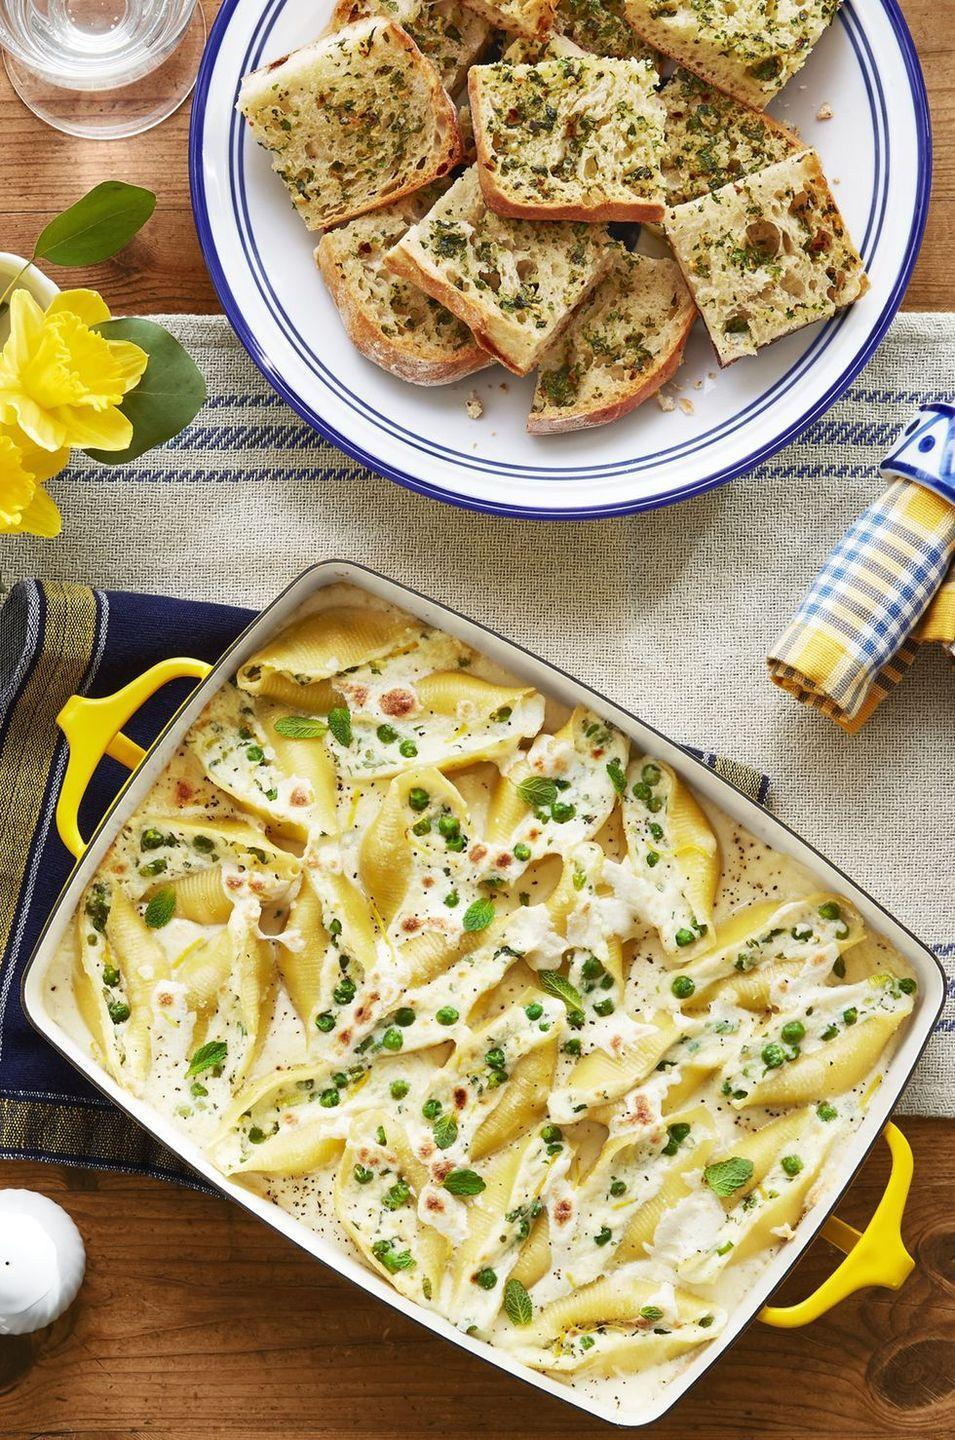 """<p>Creamy ricotta, mozzarella, and Romano cheeses are stuffed into these jumbo shells and balanced out by the hint of mint in each bite.</p><p><strong><a href=""""https://www.countryliving.com/food-drinks/a27576713/pea-and-mint-stuffed-shells-recipe/"""" rel=""""nofollow noopener"""" target=""""_blank"""" data-ylk=""""slk:Get the recipe"""" class=""""link rapid-noclick-resp"""">Get the recipe</a>.</strong></p><p><strong><a class=""""link rapid-noclick-resp"""" href=""""https://www.amazon.com/REGALO-Stoneware-Baking-14x9-5x2-5-White/dp/B07LBVT3NK/ref=sr_1_5?tag=syn-yahoo-20&ascsubtag=%5Bartid%7C10050.g.1487%5Bsrc%7Cyahoo-us"""" rel=""""nofollow noopener"""" target=""""_blank"""" data-ylk=""""slk:SHOP BAKING DISHES"""">SHOP BAKING DISHES</a><br></strong></p>"""